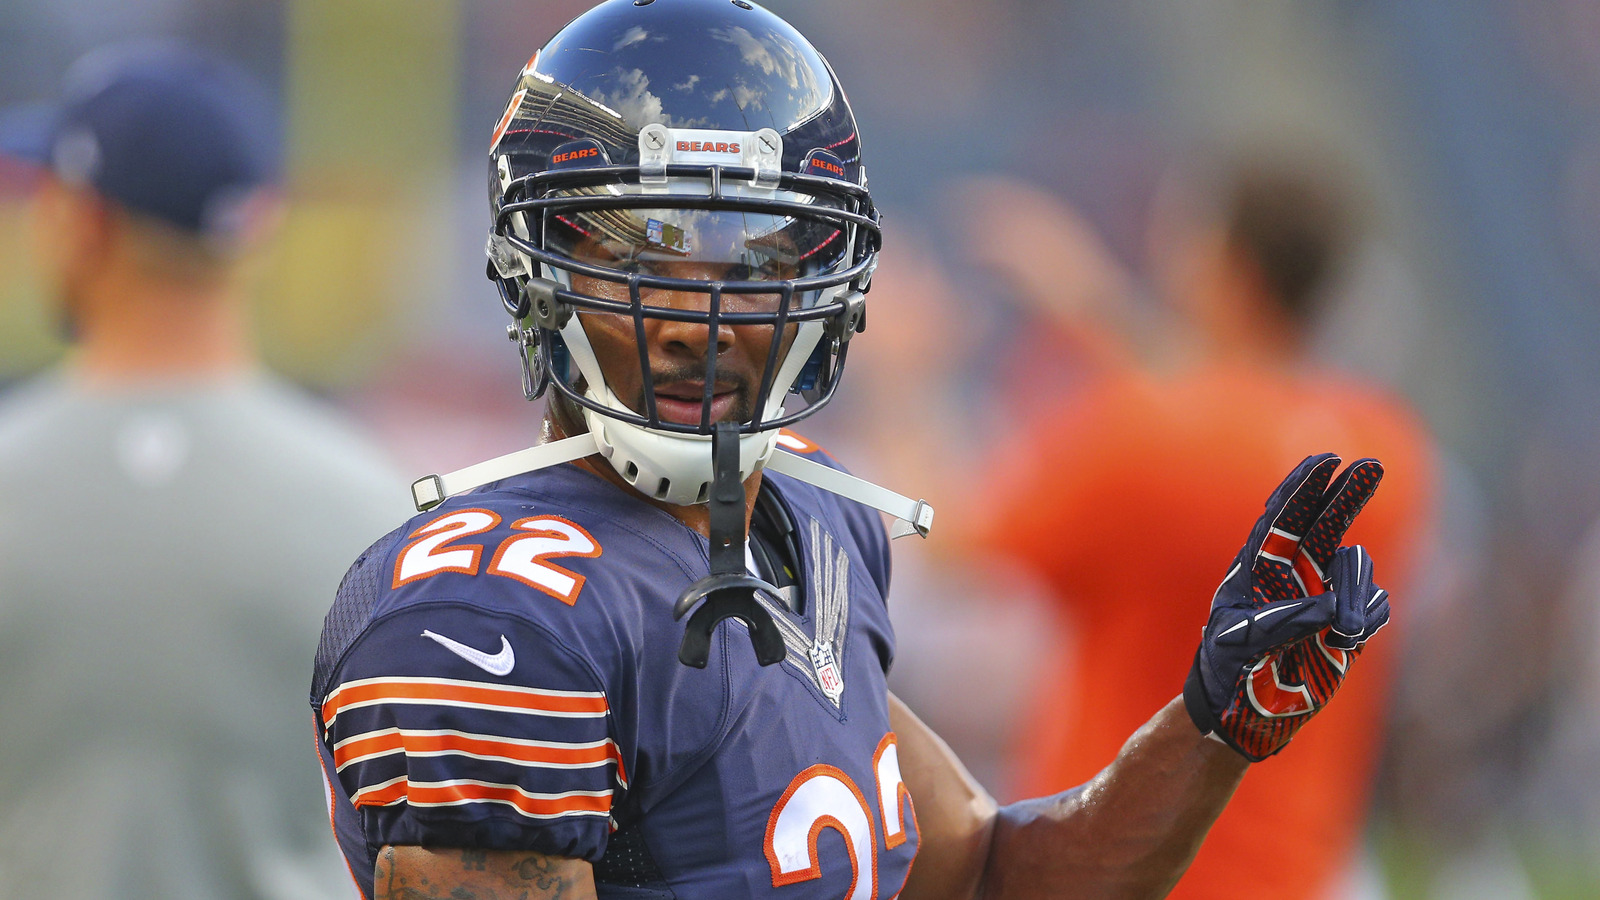 Fox: Knee injuries to Forte, Royal likely not season-ending